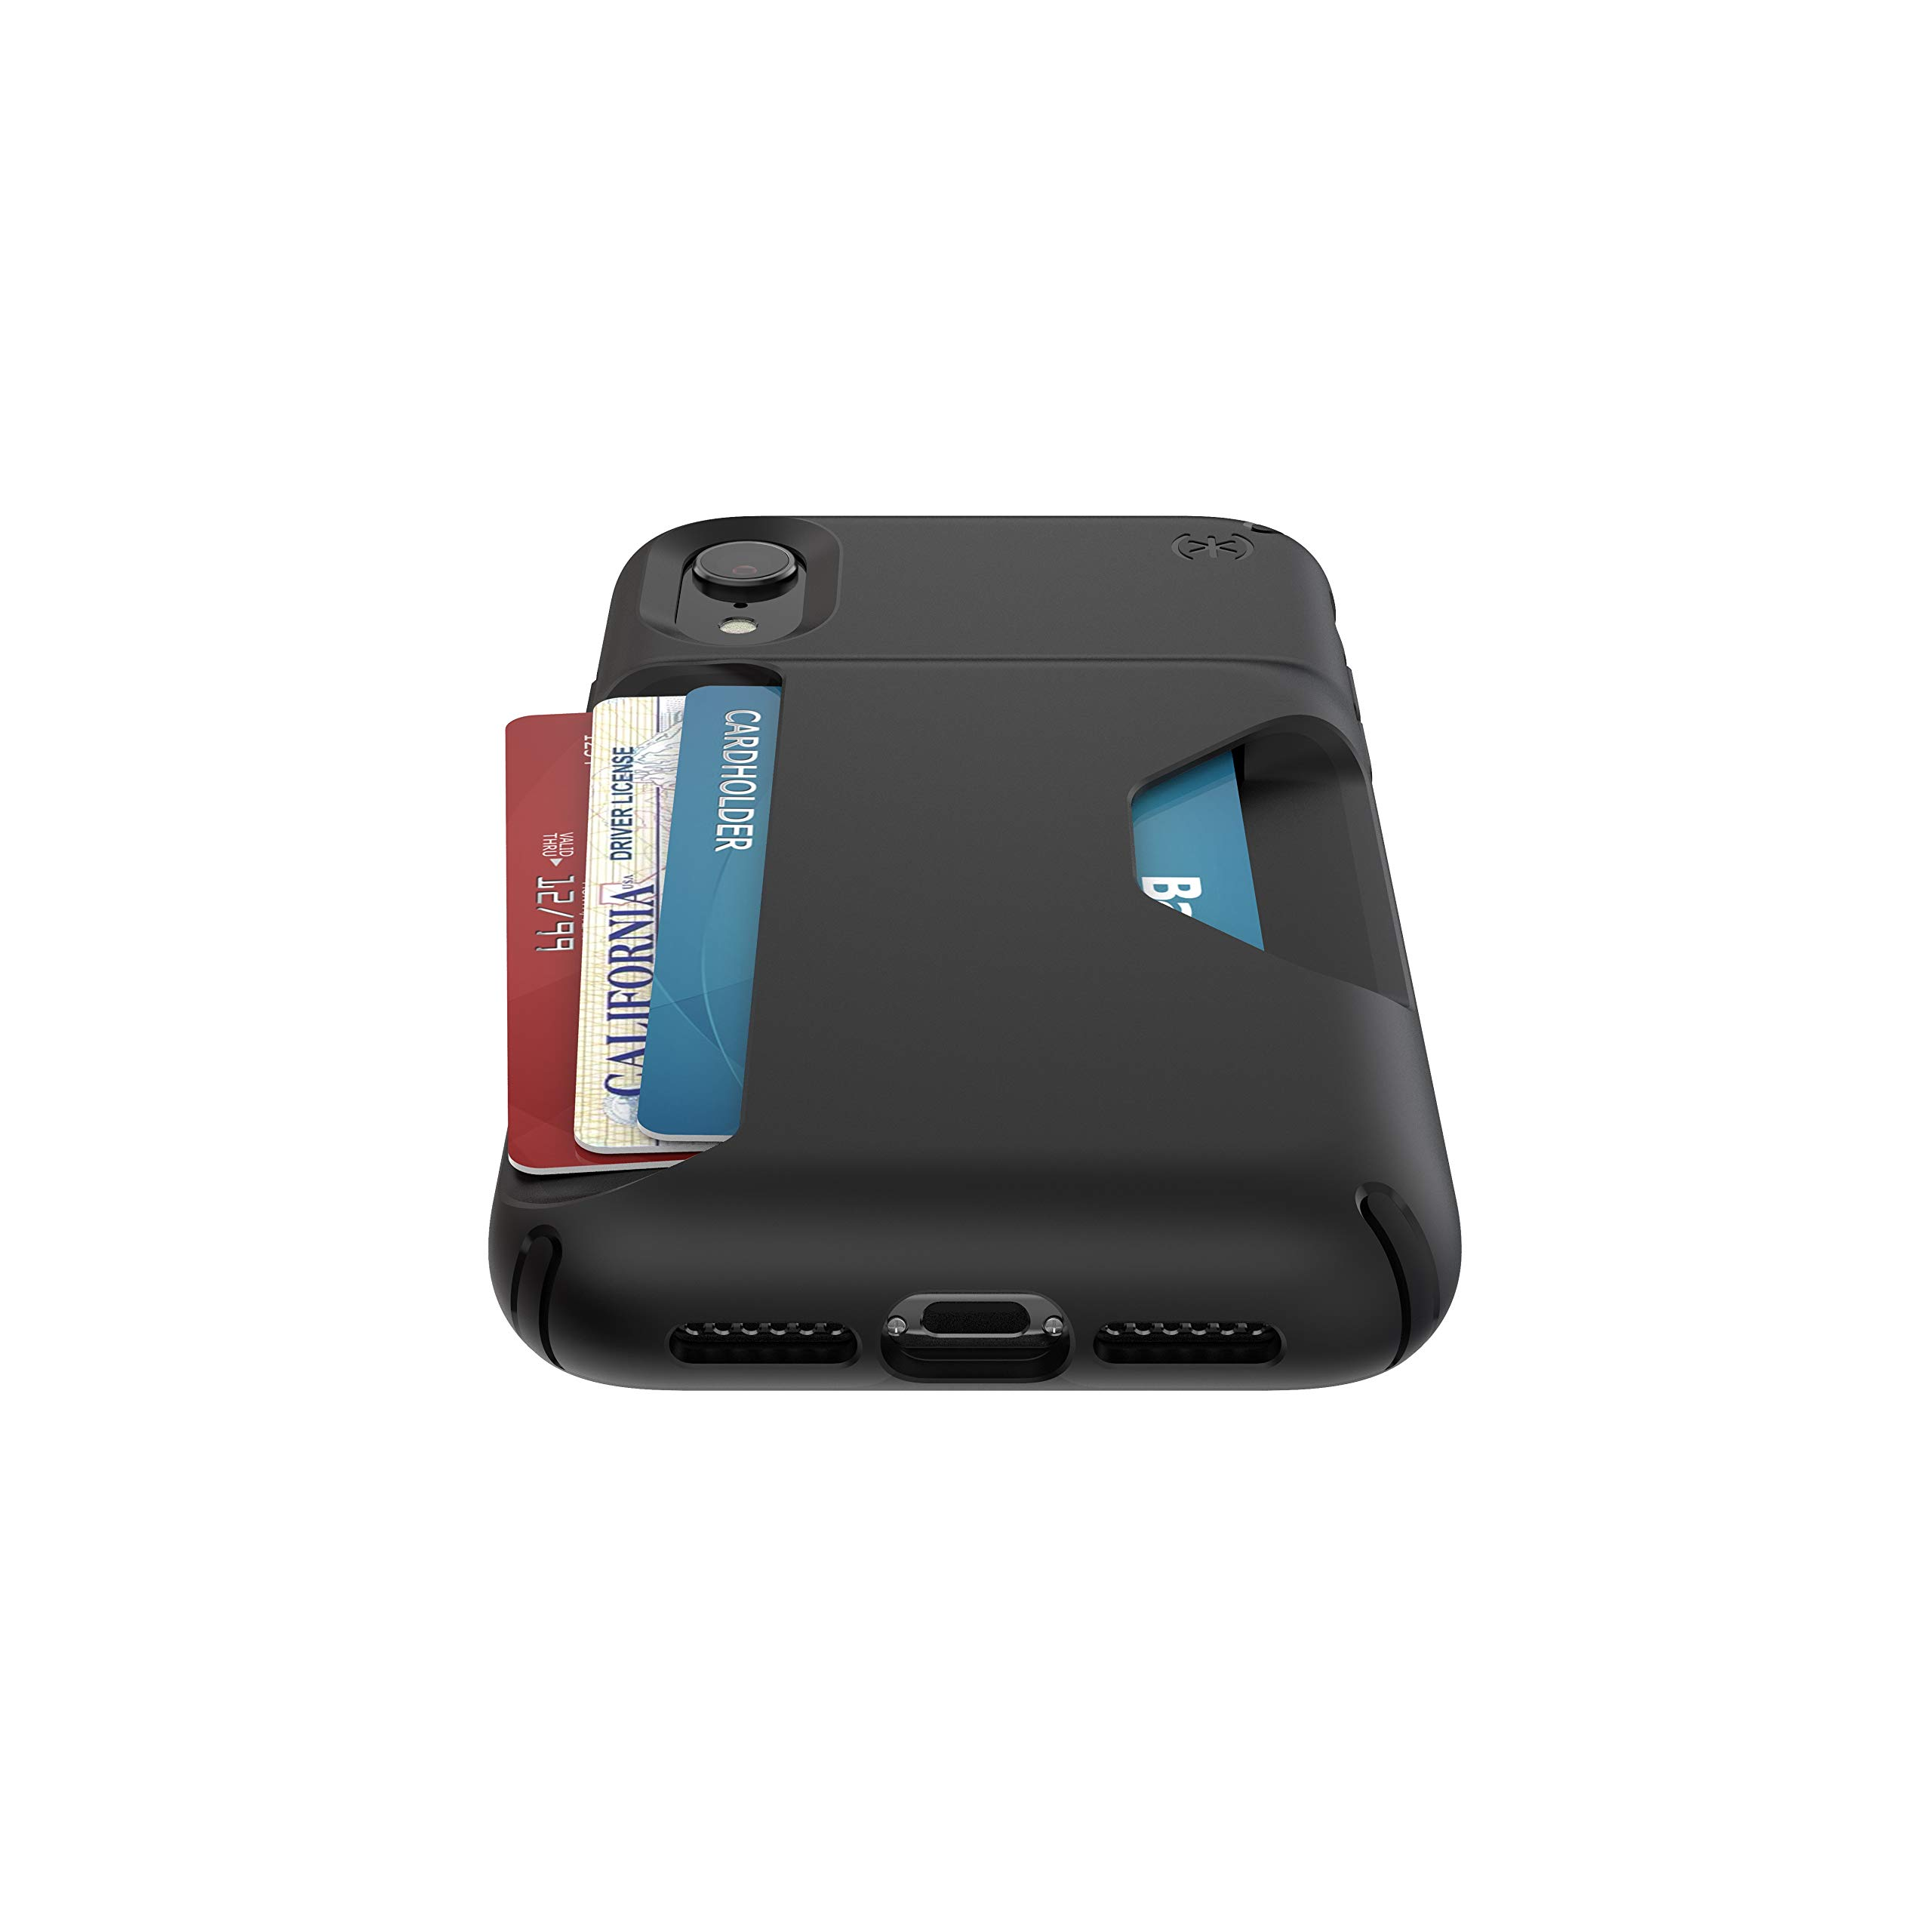 Speck Products Presidio Wallet iPhone XR Case, Black/Black by Speck (Image #3)